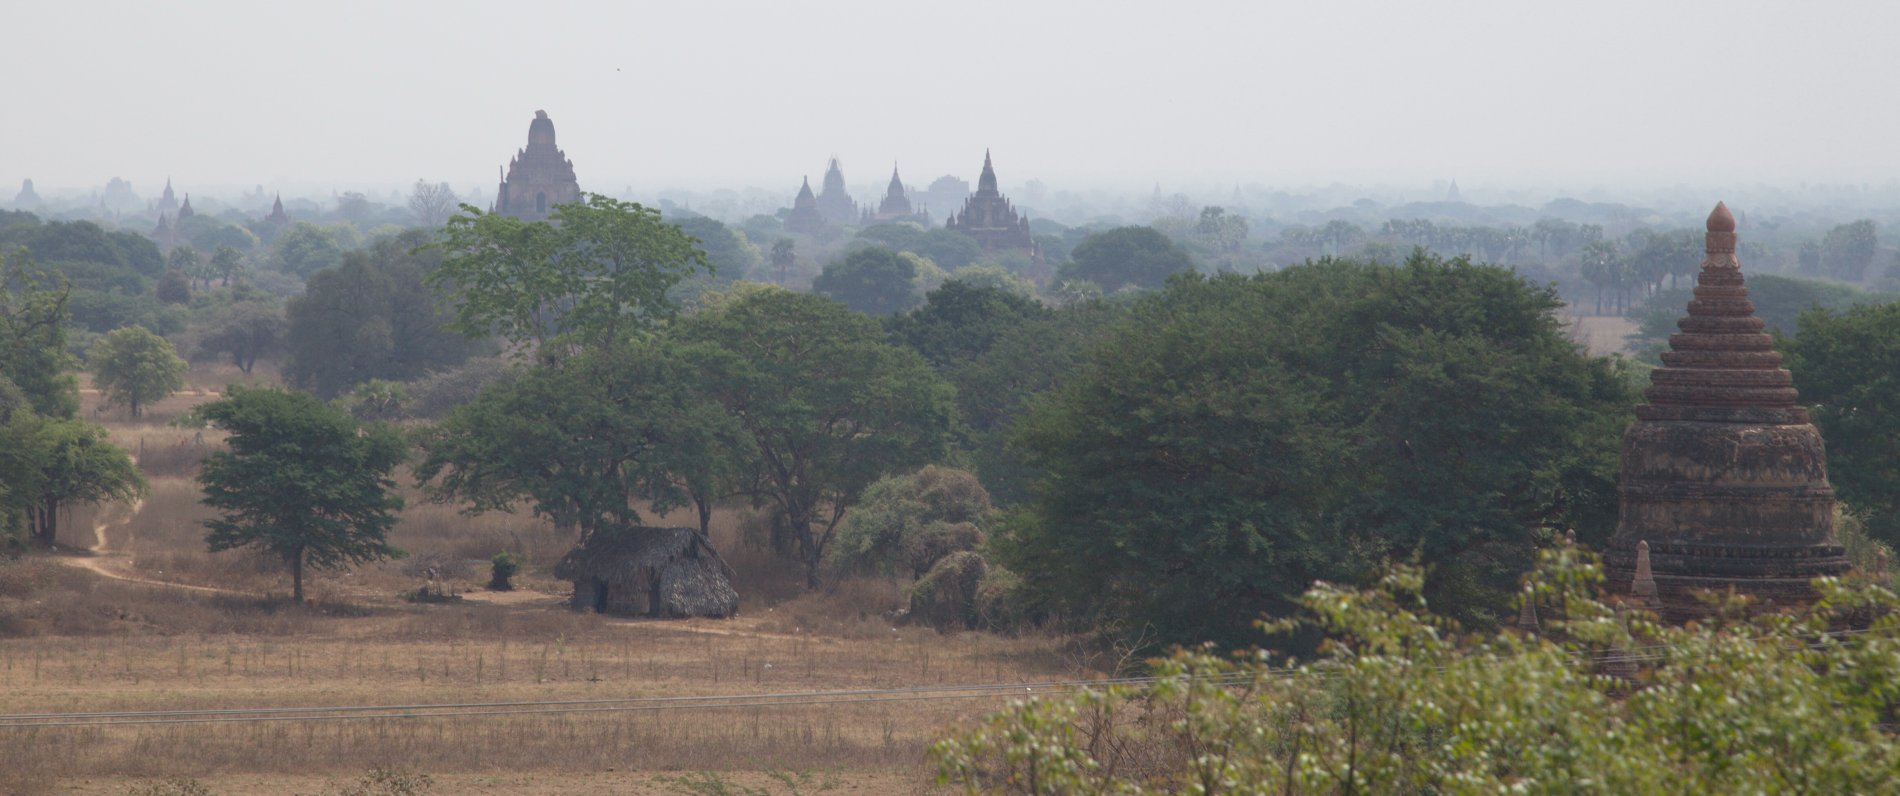 Bagan_273.jpg-commment